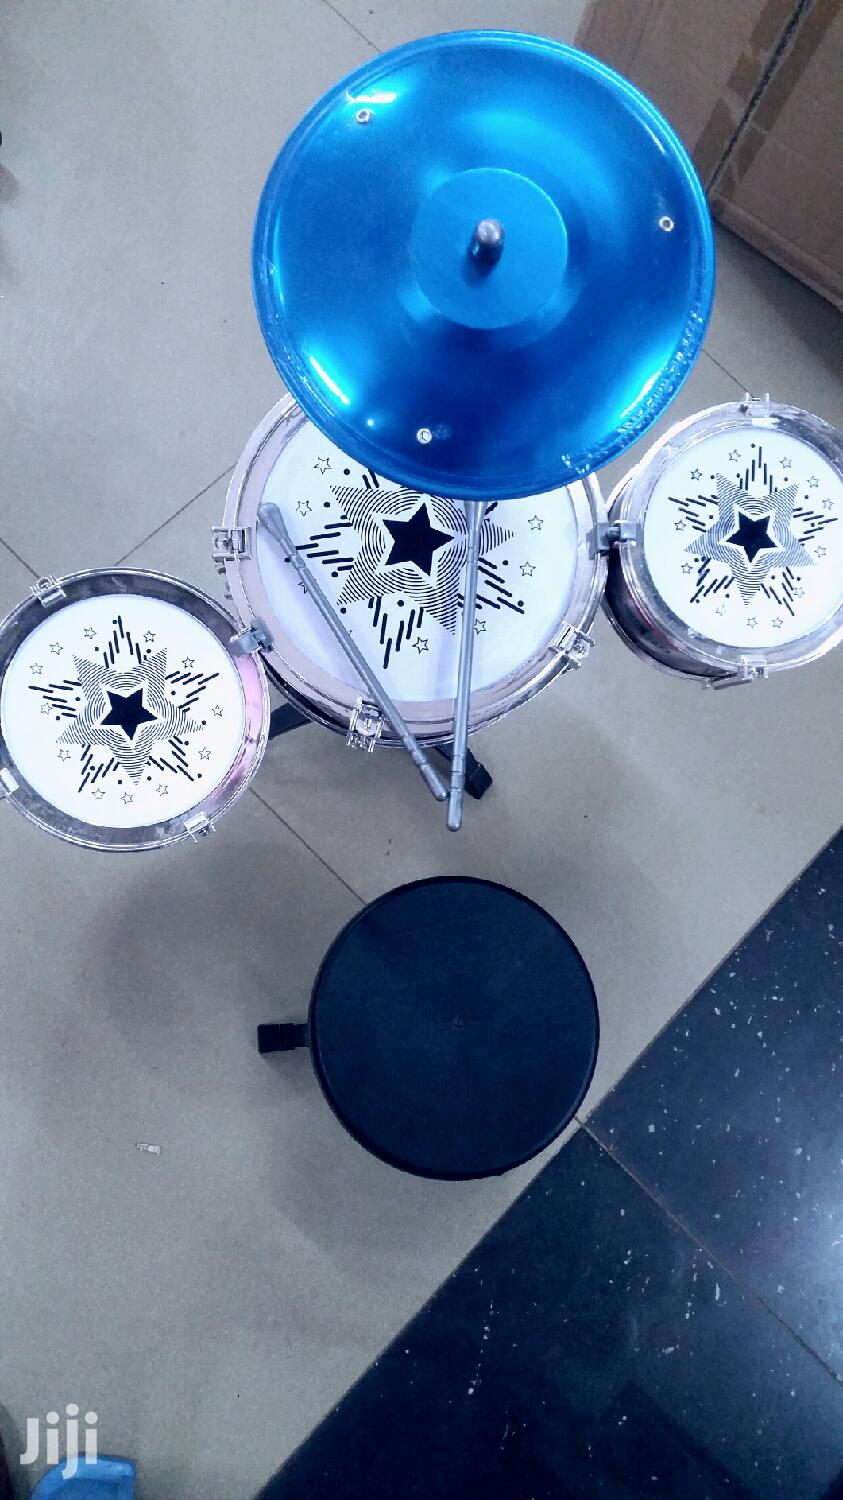 Kids Drums / Toy Drums For Kids With Stool | Toys for sale in Kampala, Central Region, Uganda